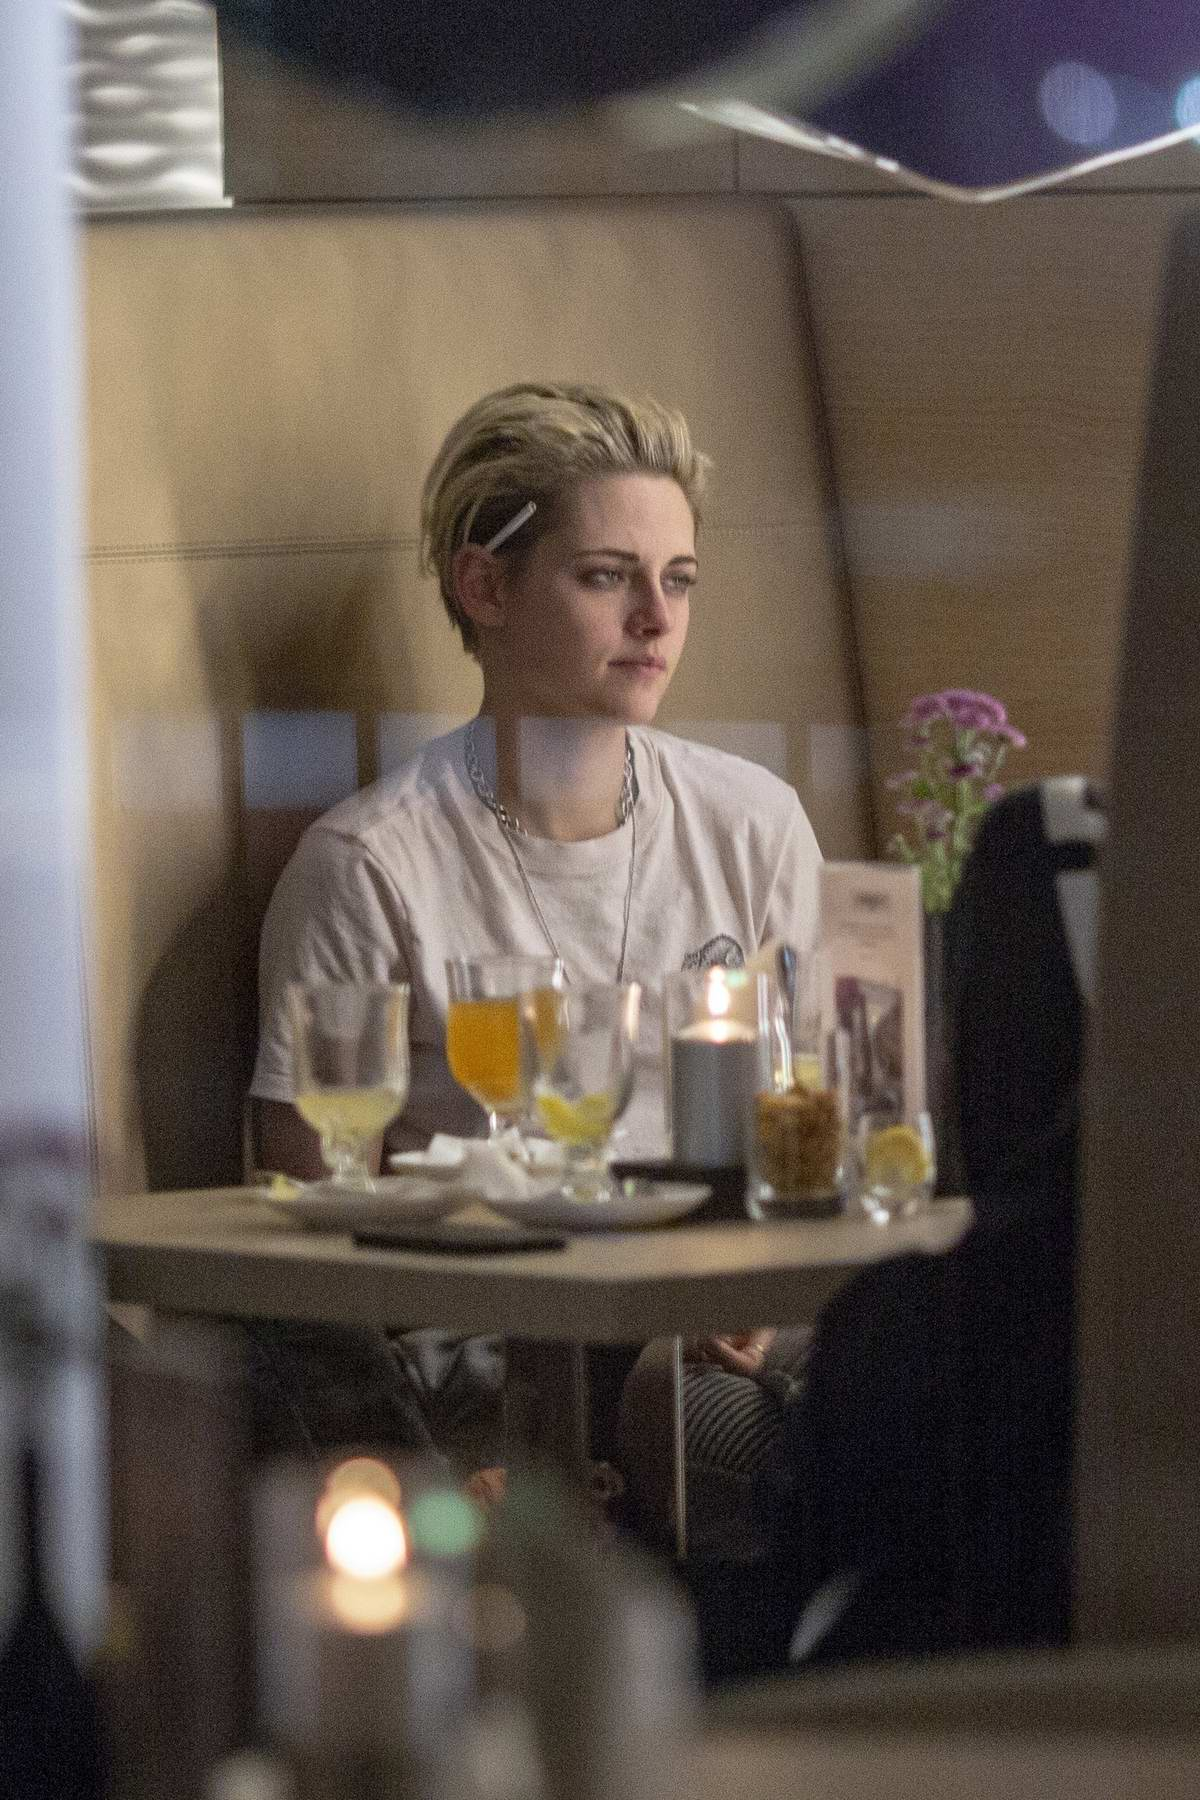 Kristen Stewart spotted at the Westin's Bridge bar in Hamburg, Germany